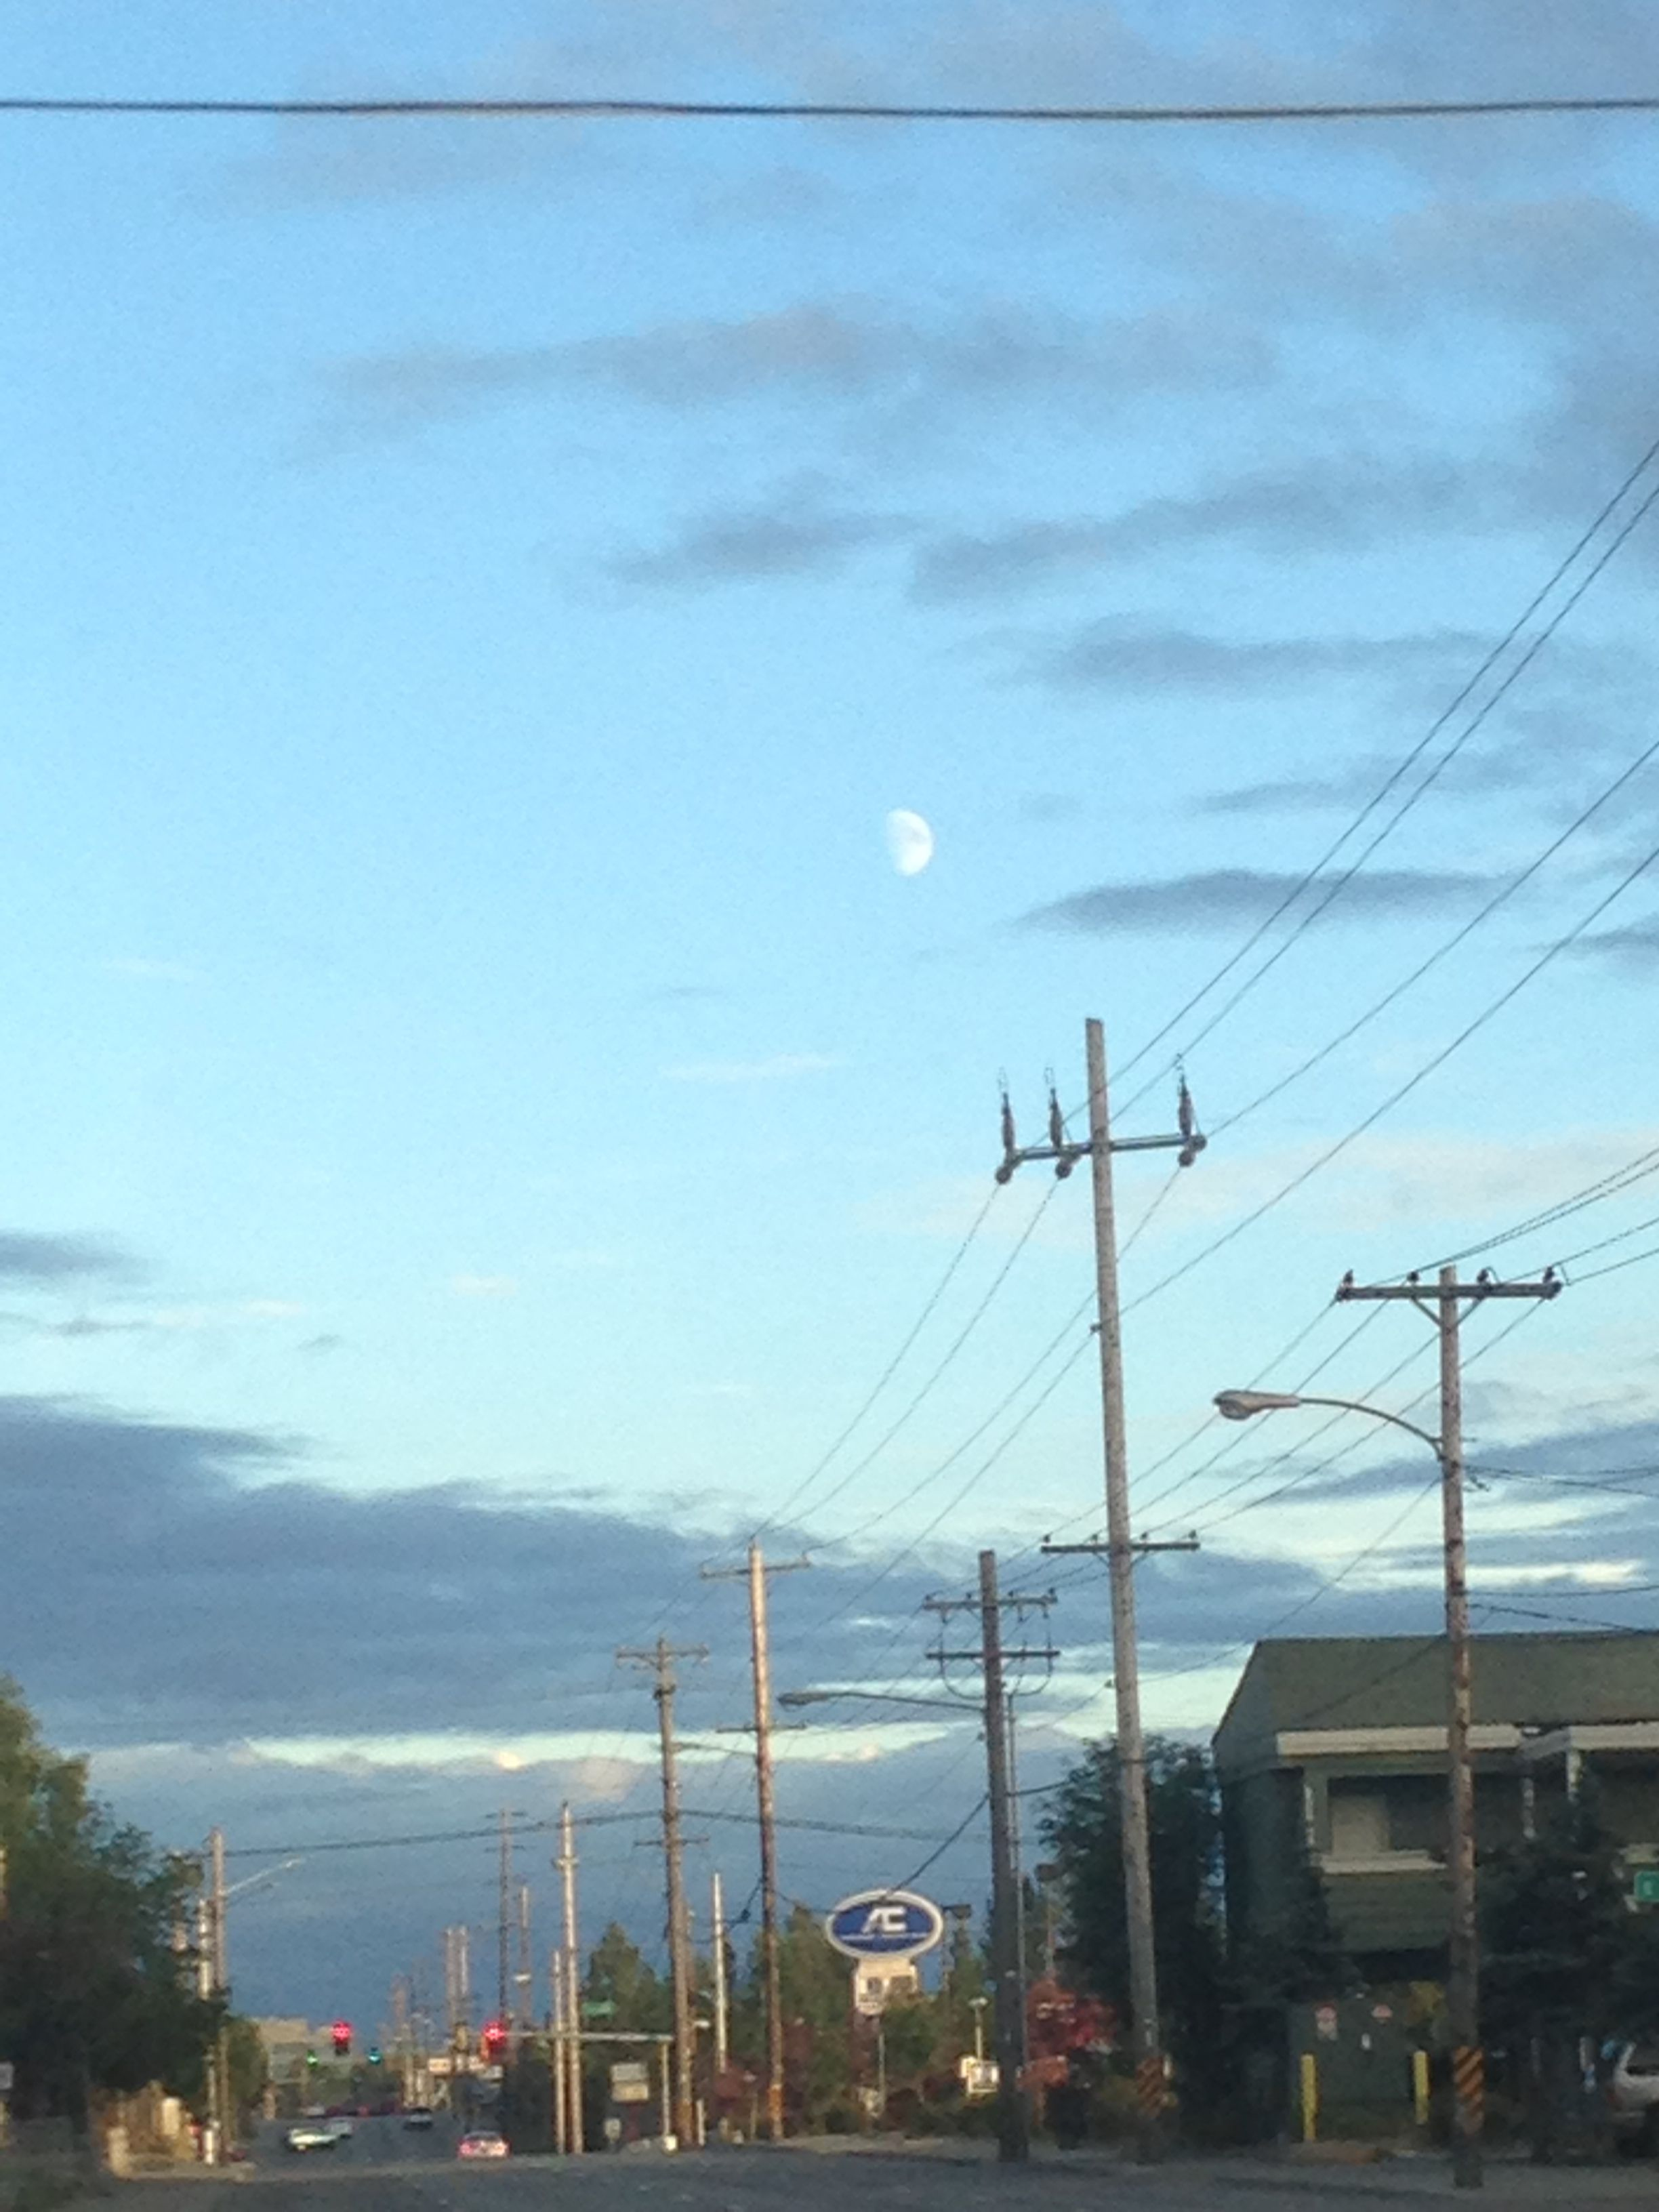 I see you moon